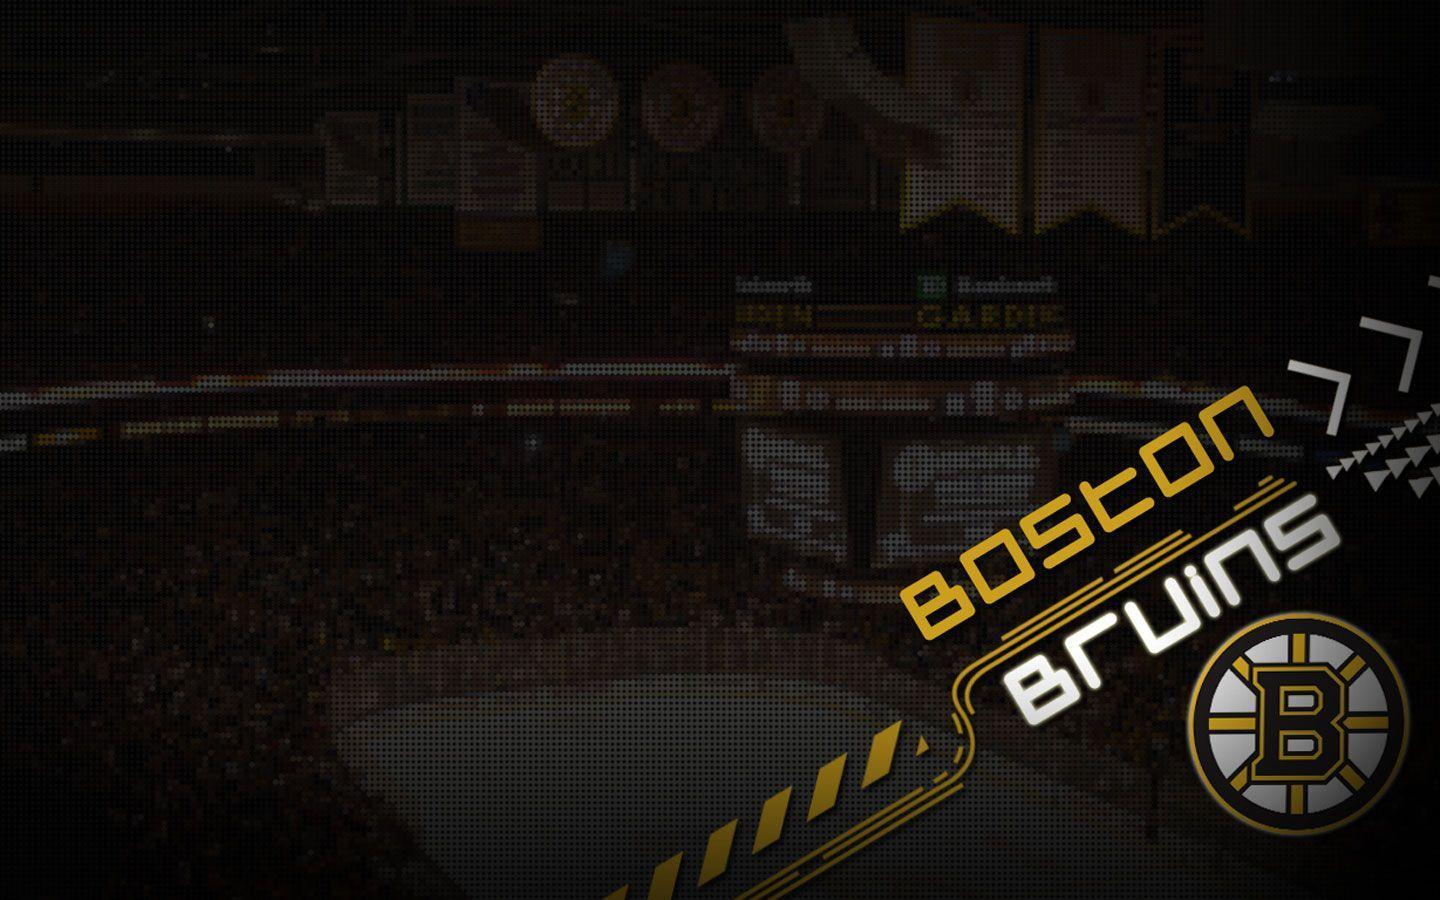 Boston Bruins Wallpaper | Download HD Wallpapers | Wide Wallpaper HD